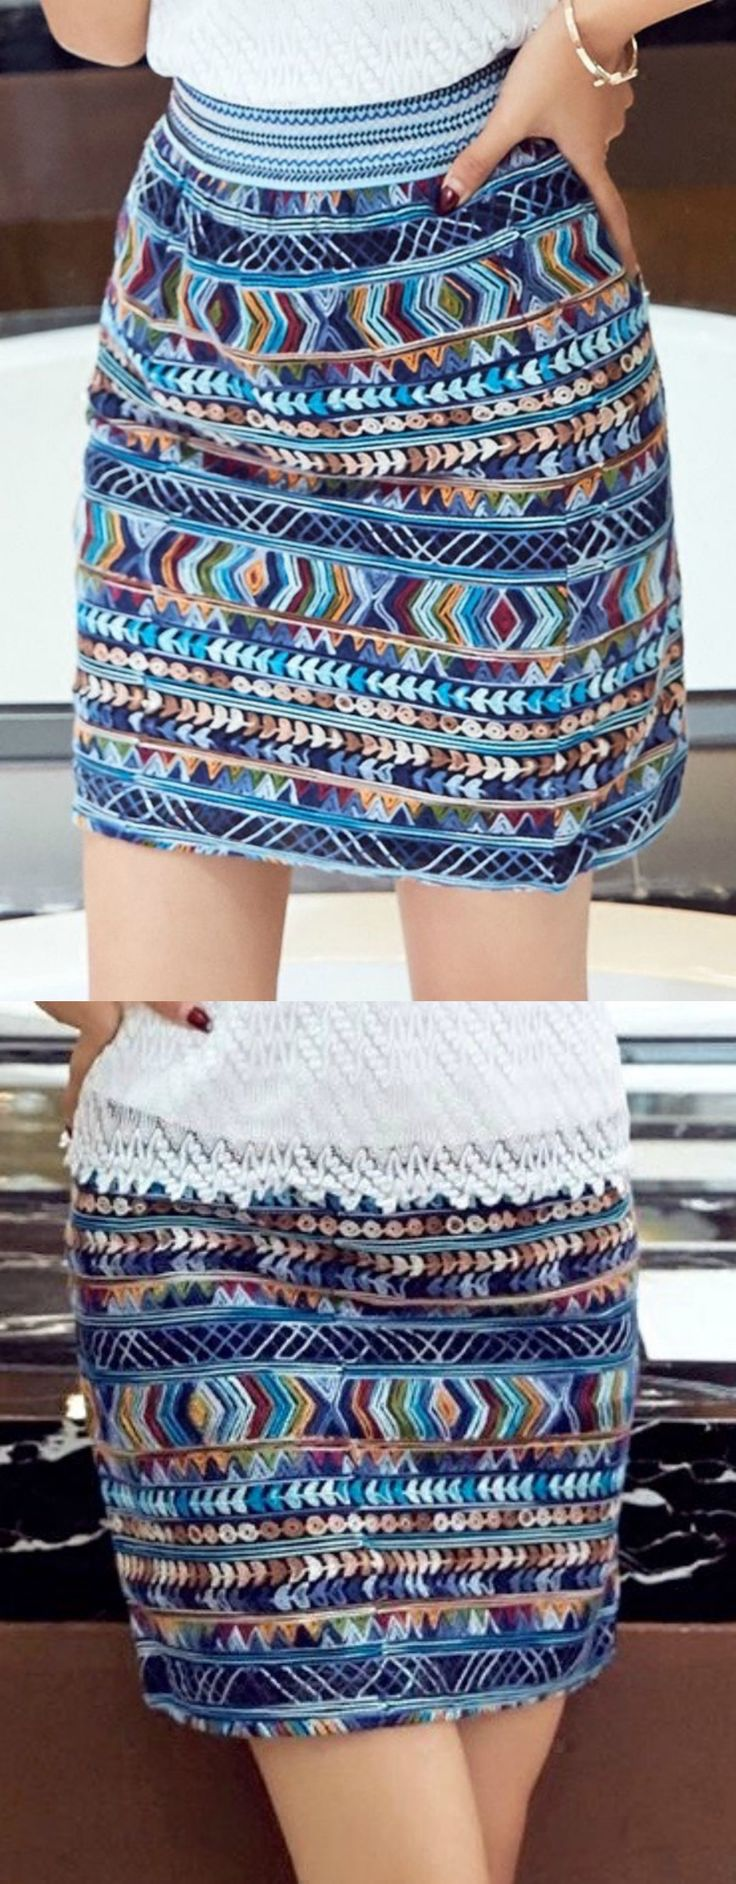 Blue Tribal Embroidery Skirt is now available at $36 from Pasaboho. Fashion trend and styles from hippie chic, modern vintage, gypsy style, boho chic, hmong ethnic, street style, geometric and floral outfits. We Love boho style and embroidery stitches. Hippie girls with free spirit sharing woman outfit ideas and bohemian clothes, cute dresses and skirts. This skirt exhibit beautiful tribal style embroidery patterns.